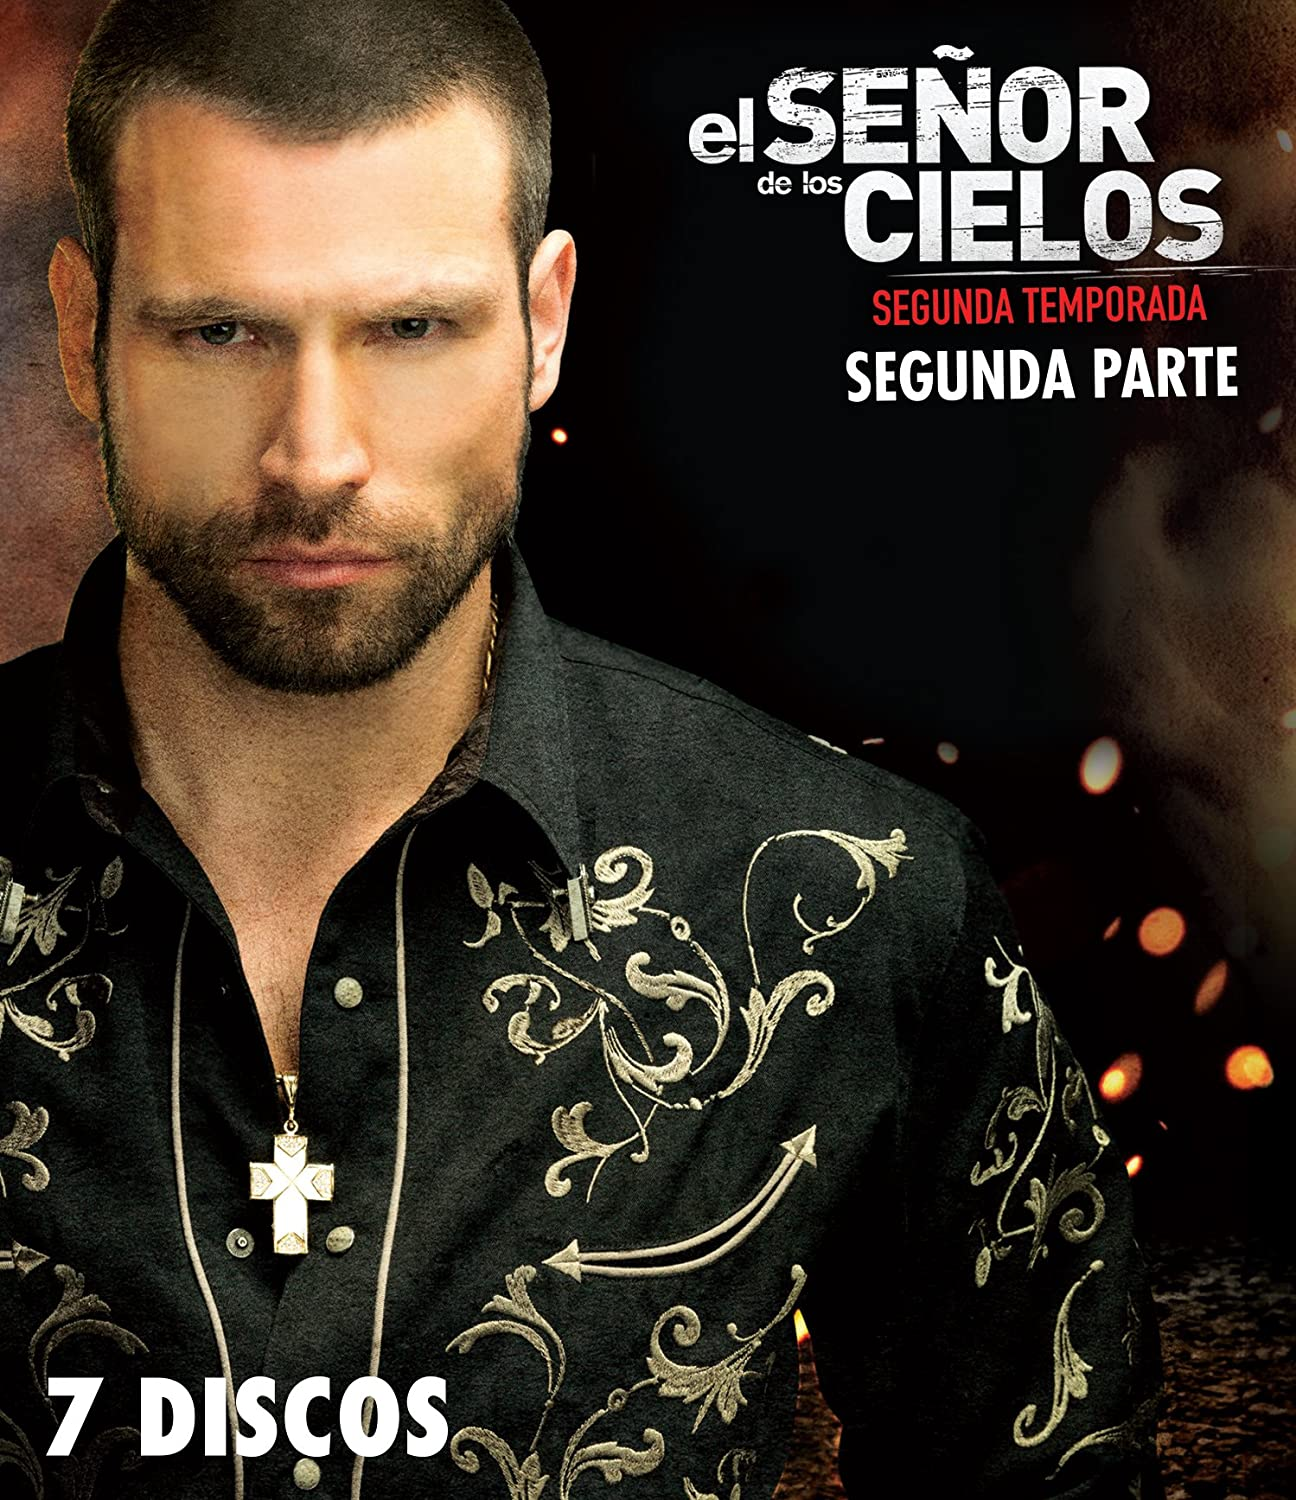 El Senor De Los Cielos 2 Segunda Temporada Segunda Parte Blu Ray Season 2 Part 2 Spanish Only No English Options Amazon Ca Dvd